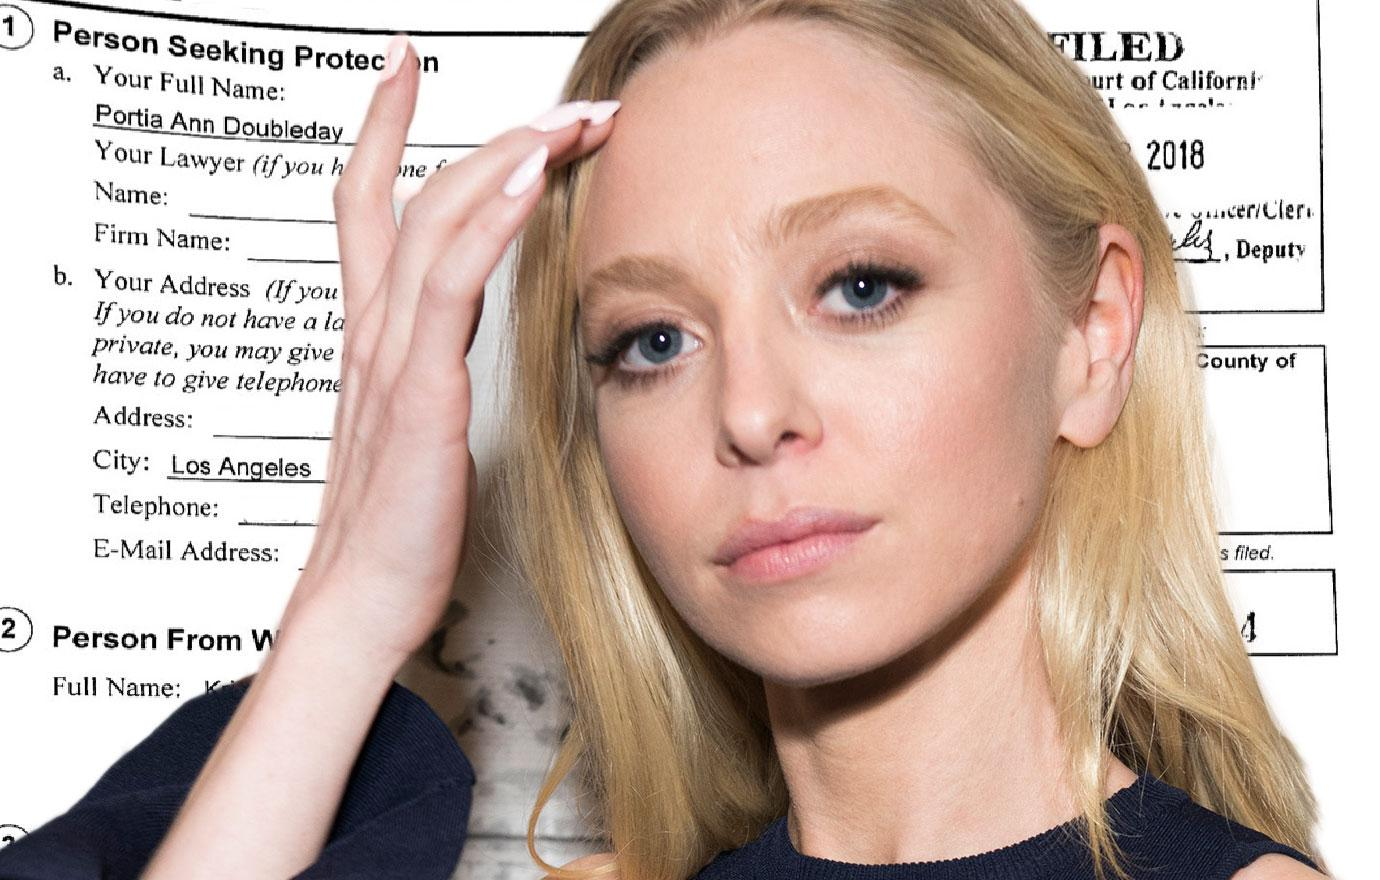 Mr Robot Star Portia Doubleday Claims She's Being Extorted